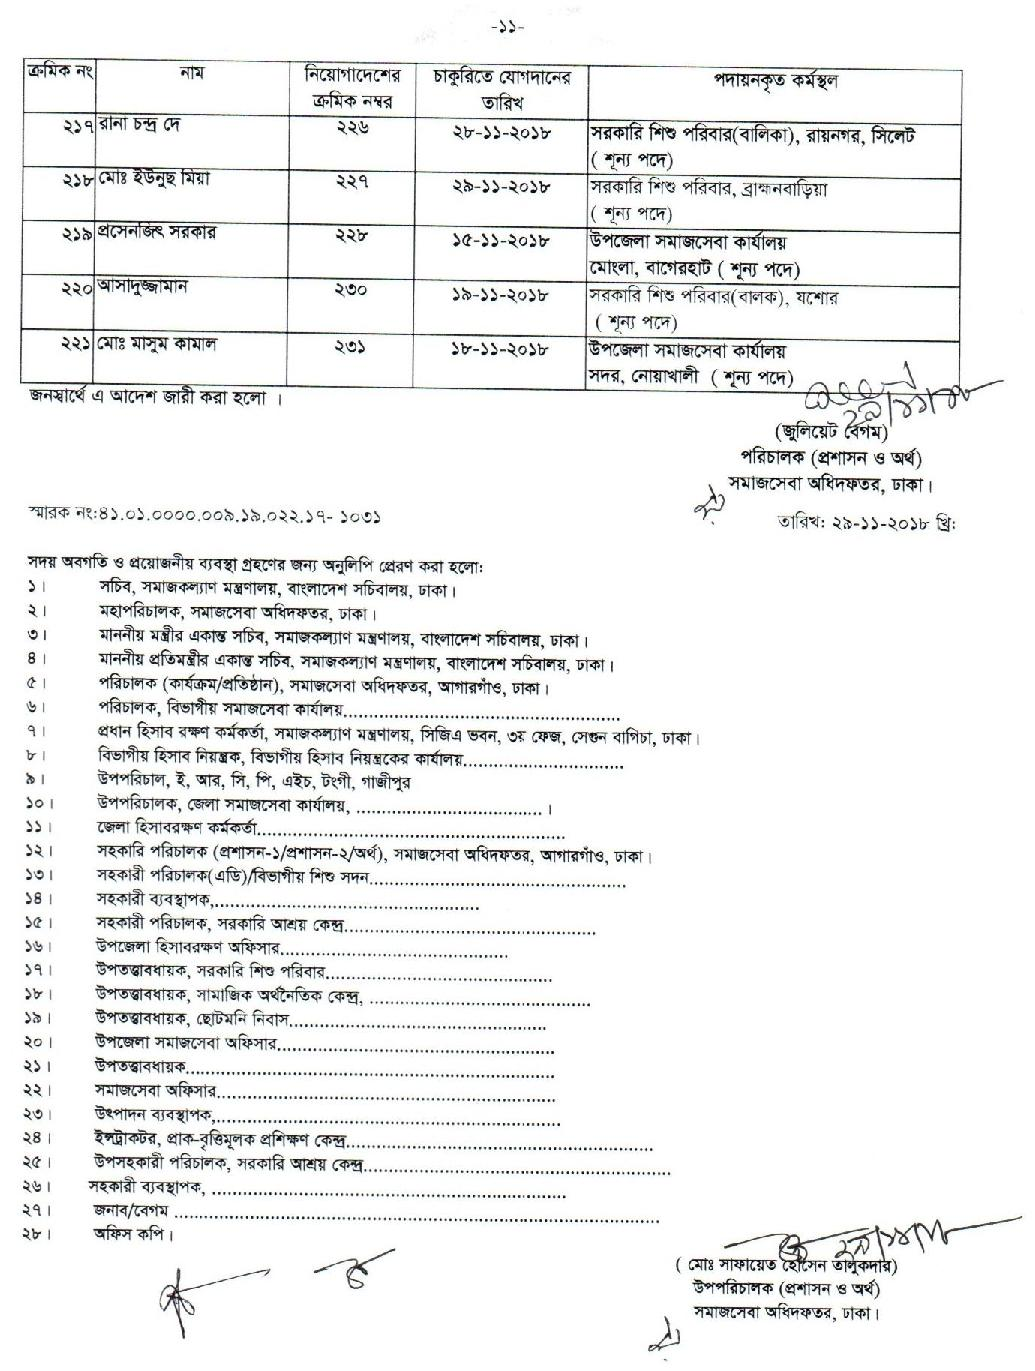 DSS Final Result And Appointment Circular 2018